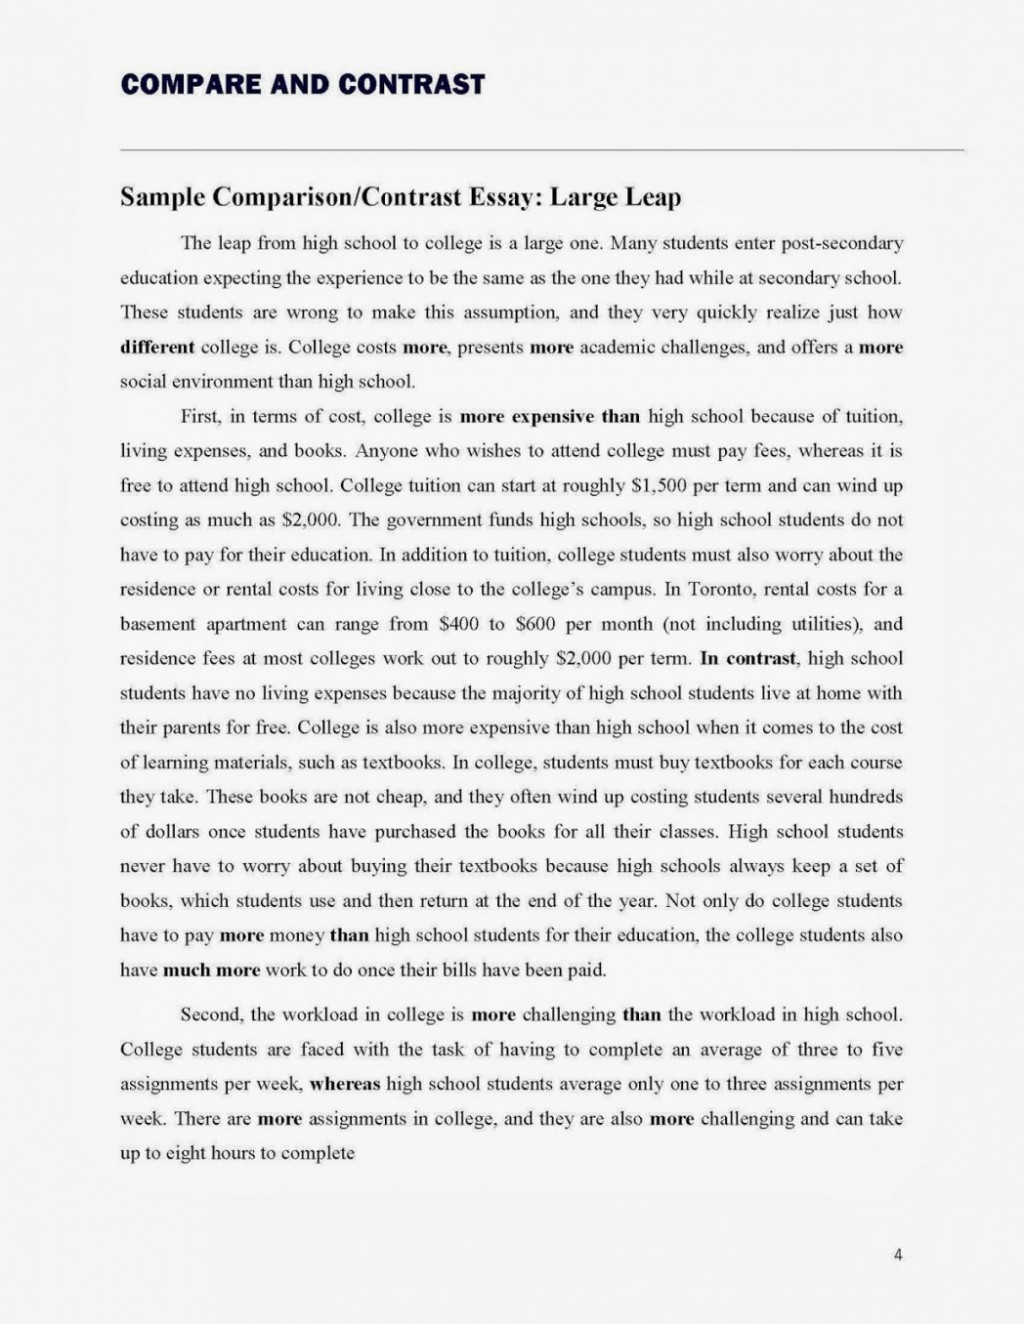 017 Comparison Essay Topic Compare Contrast Prompts College English T Level Topics Composition Samples For Students Pdfamples Argumentative Persuasive Freshman 1048x1356 Incredible Thesis Statement Toefl High School Large